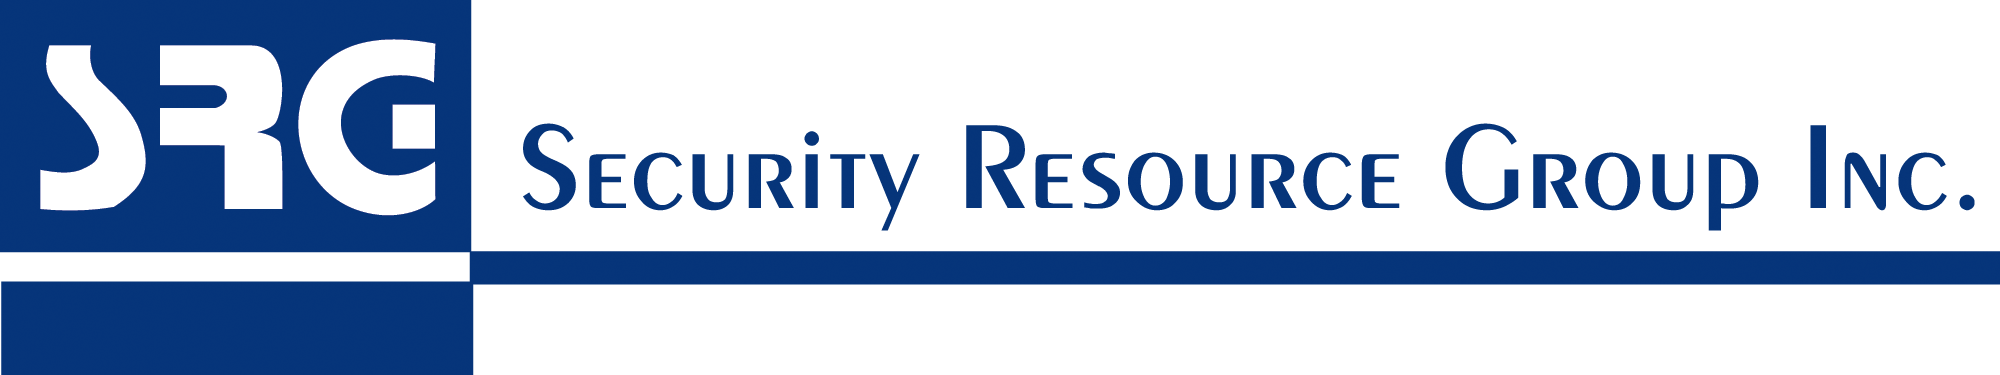 SRG Security Resource Group Inc.